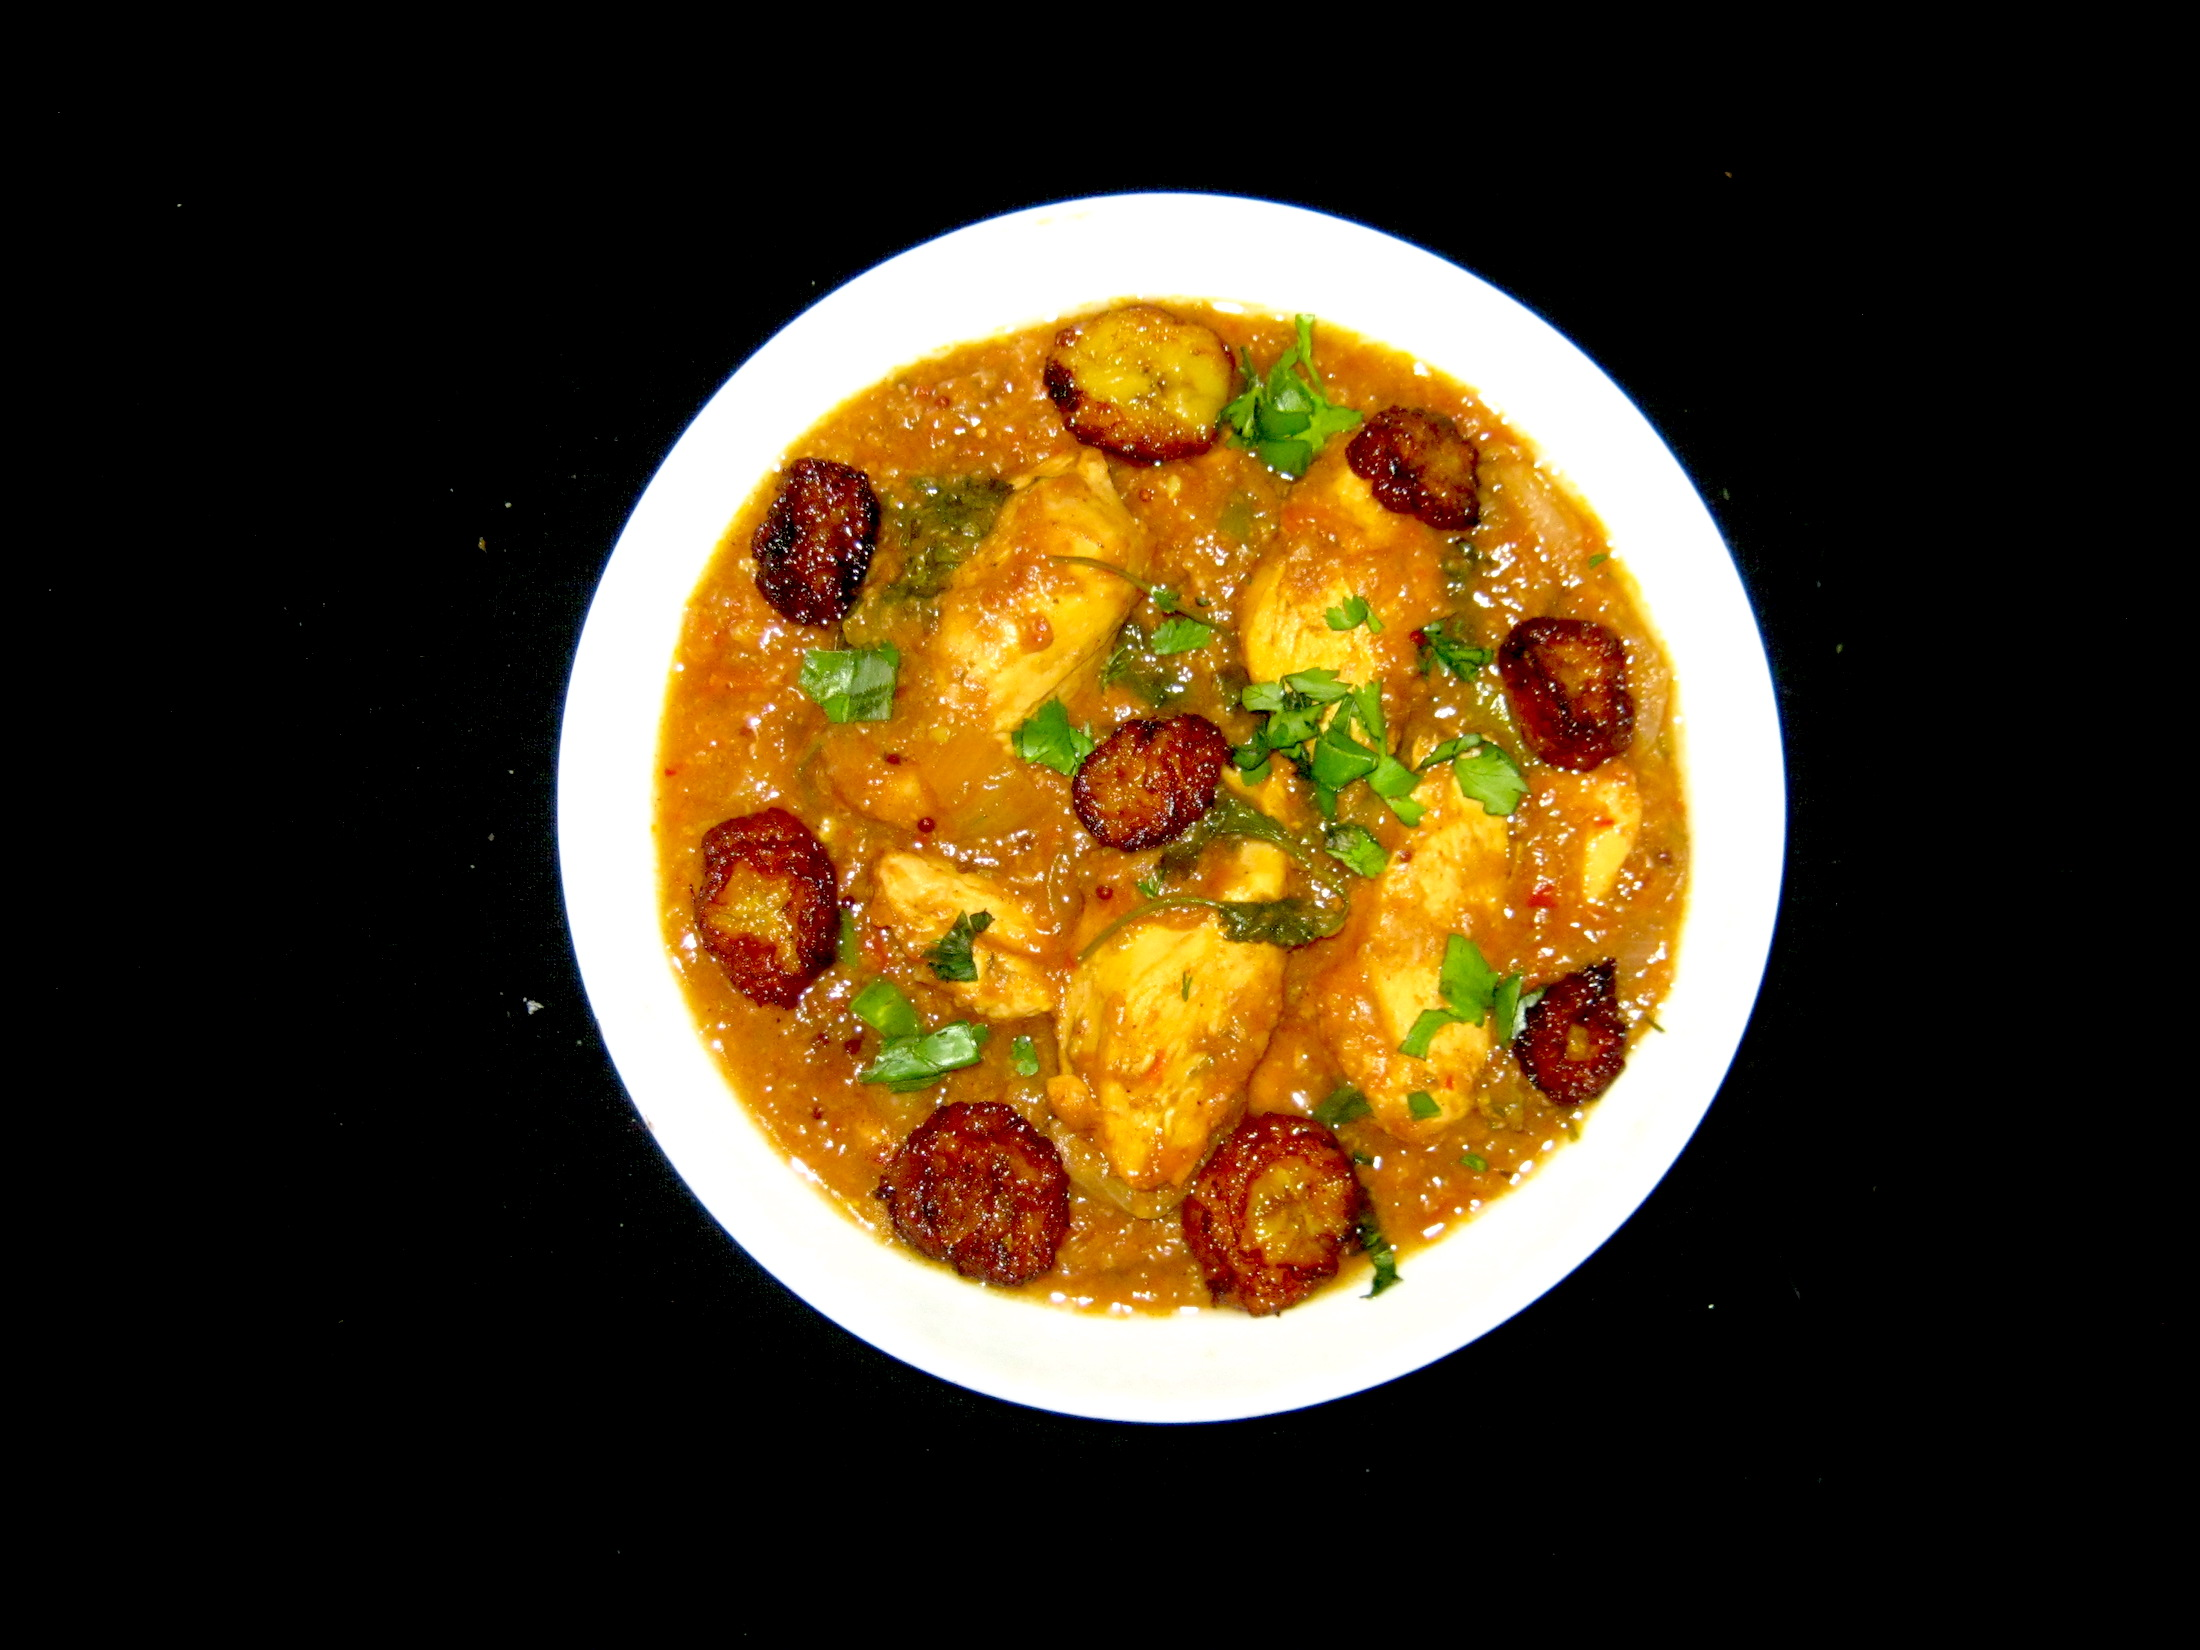 Banana chicken curry